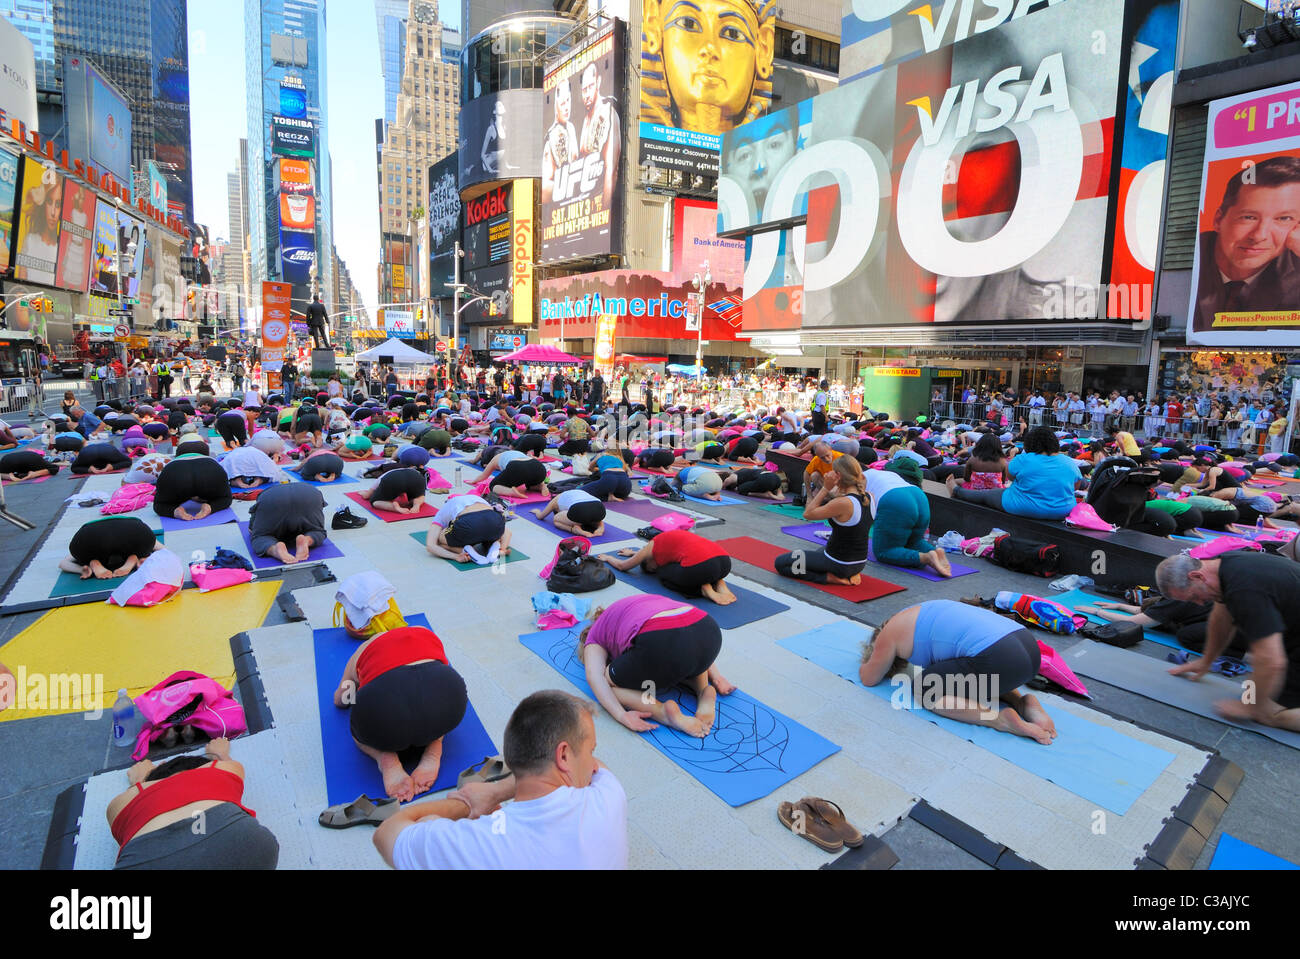 People participate in a yoga event in Times Square New York City. June 21, 2010. Stock Photo